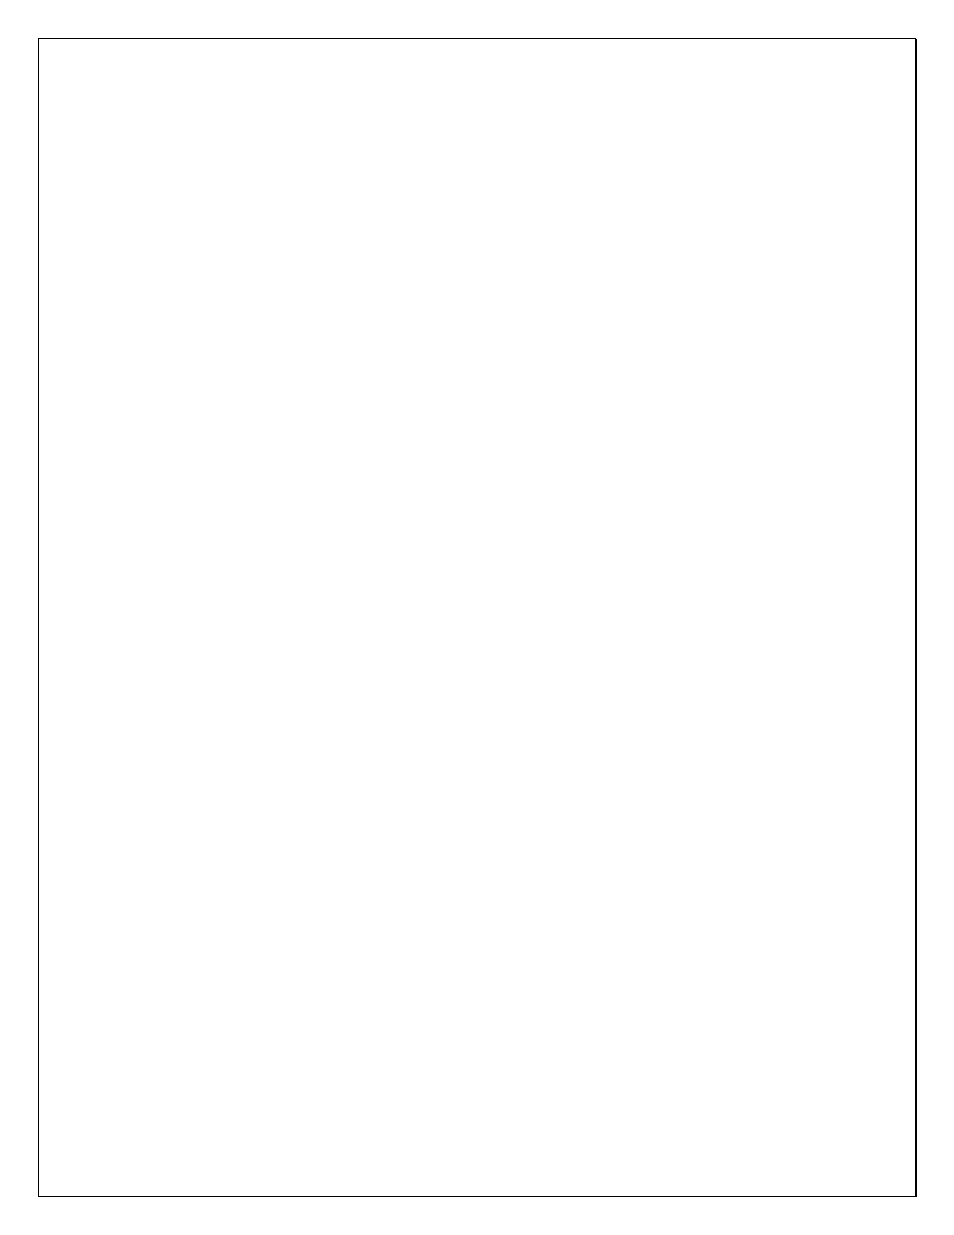 Aries Automotive 225016-2 User Manual | Page 2 / 5